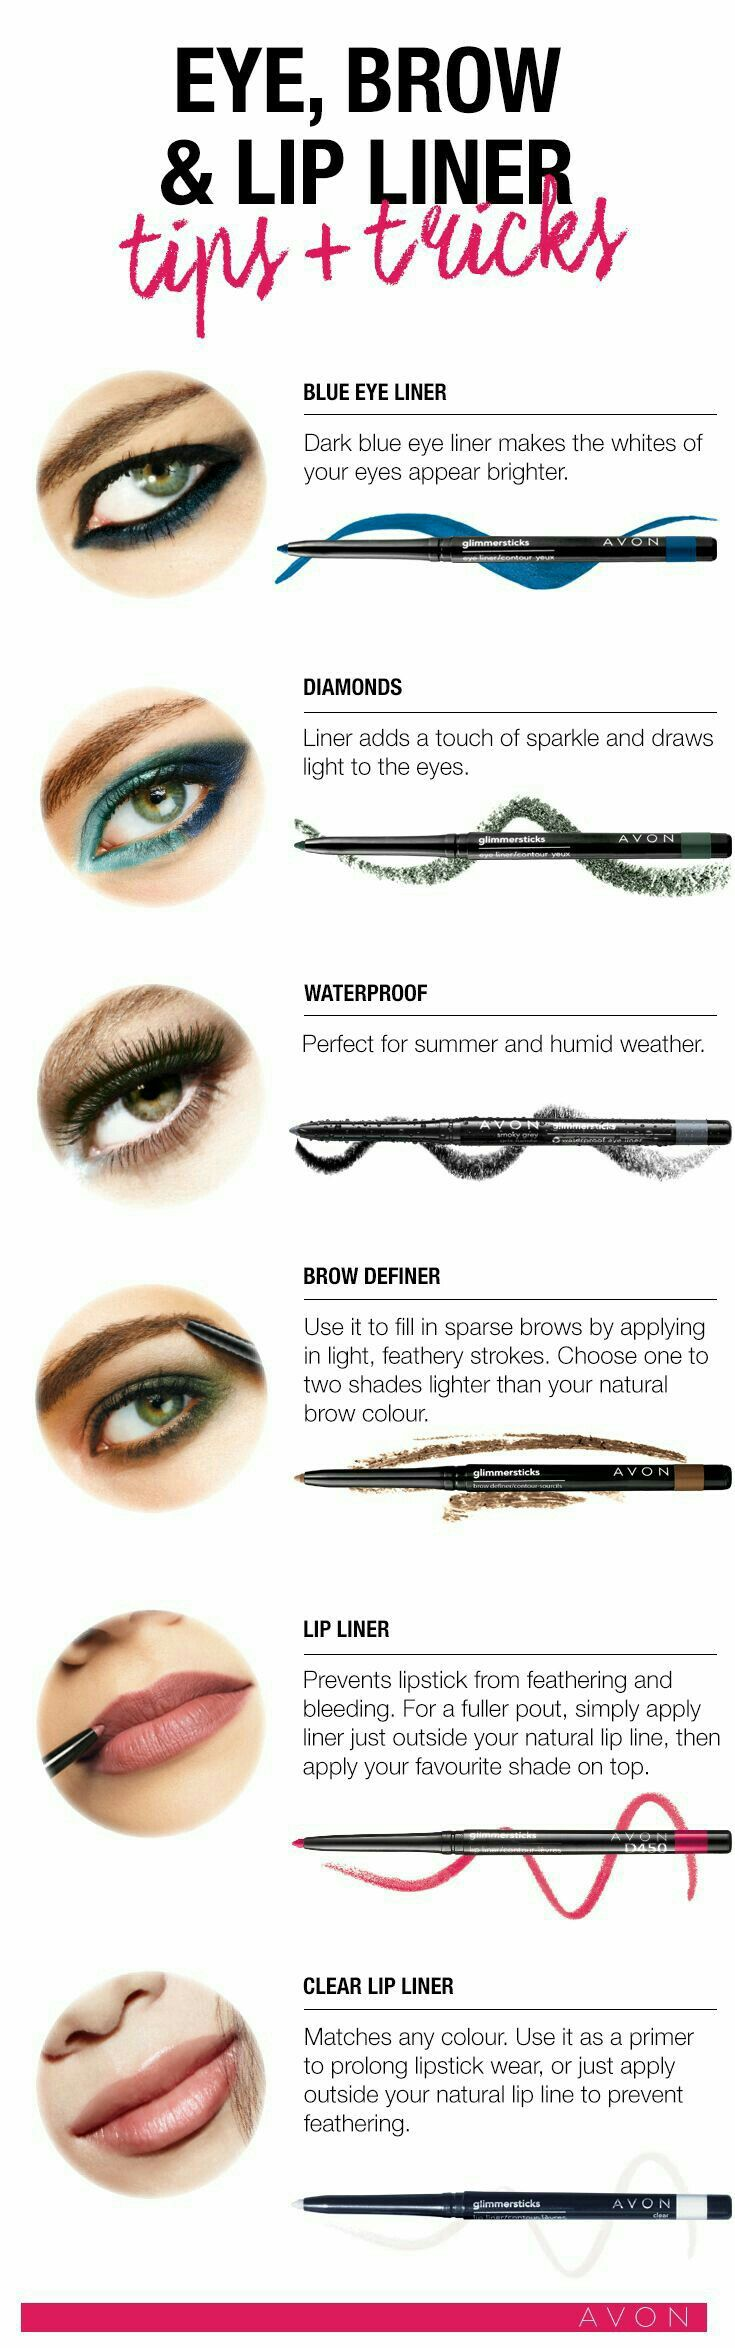 Try Glimmerstick! There is one eyes,brow and lips. Smooth creamy formula. Come shop my estore to find all the colors. www.youravon.com/kimbrown #eyes #brow